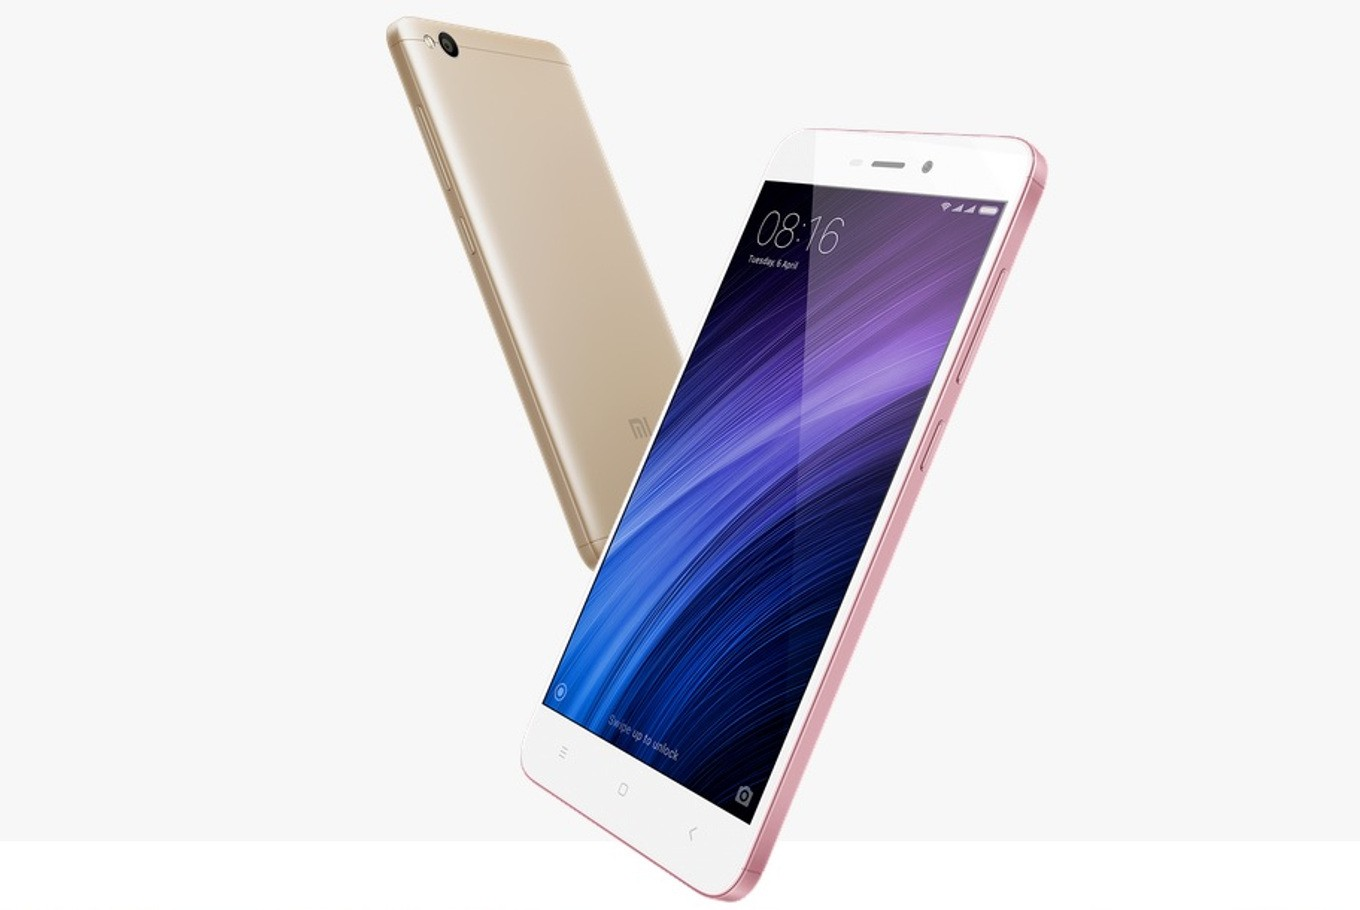 Made in indonesia smartphone coming soon from xiaomi science made in indonesia smartphone coming soon from xiaomi stopboris Choice Image